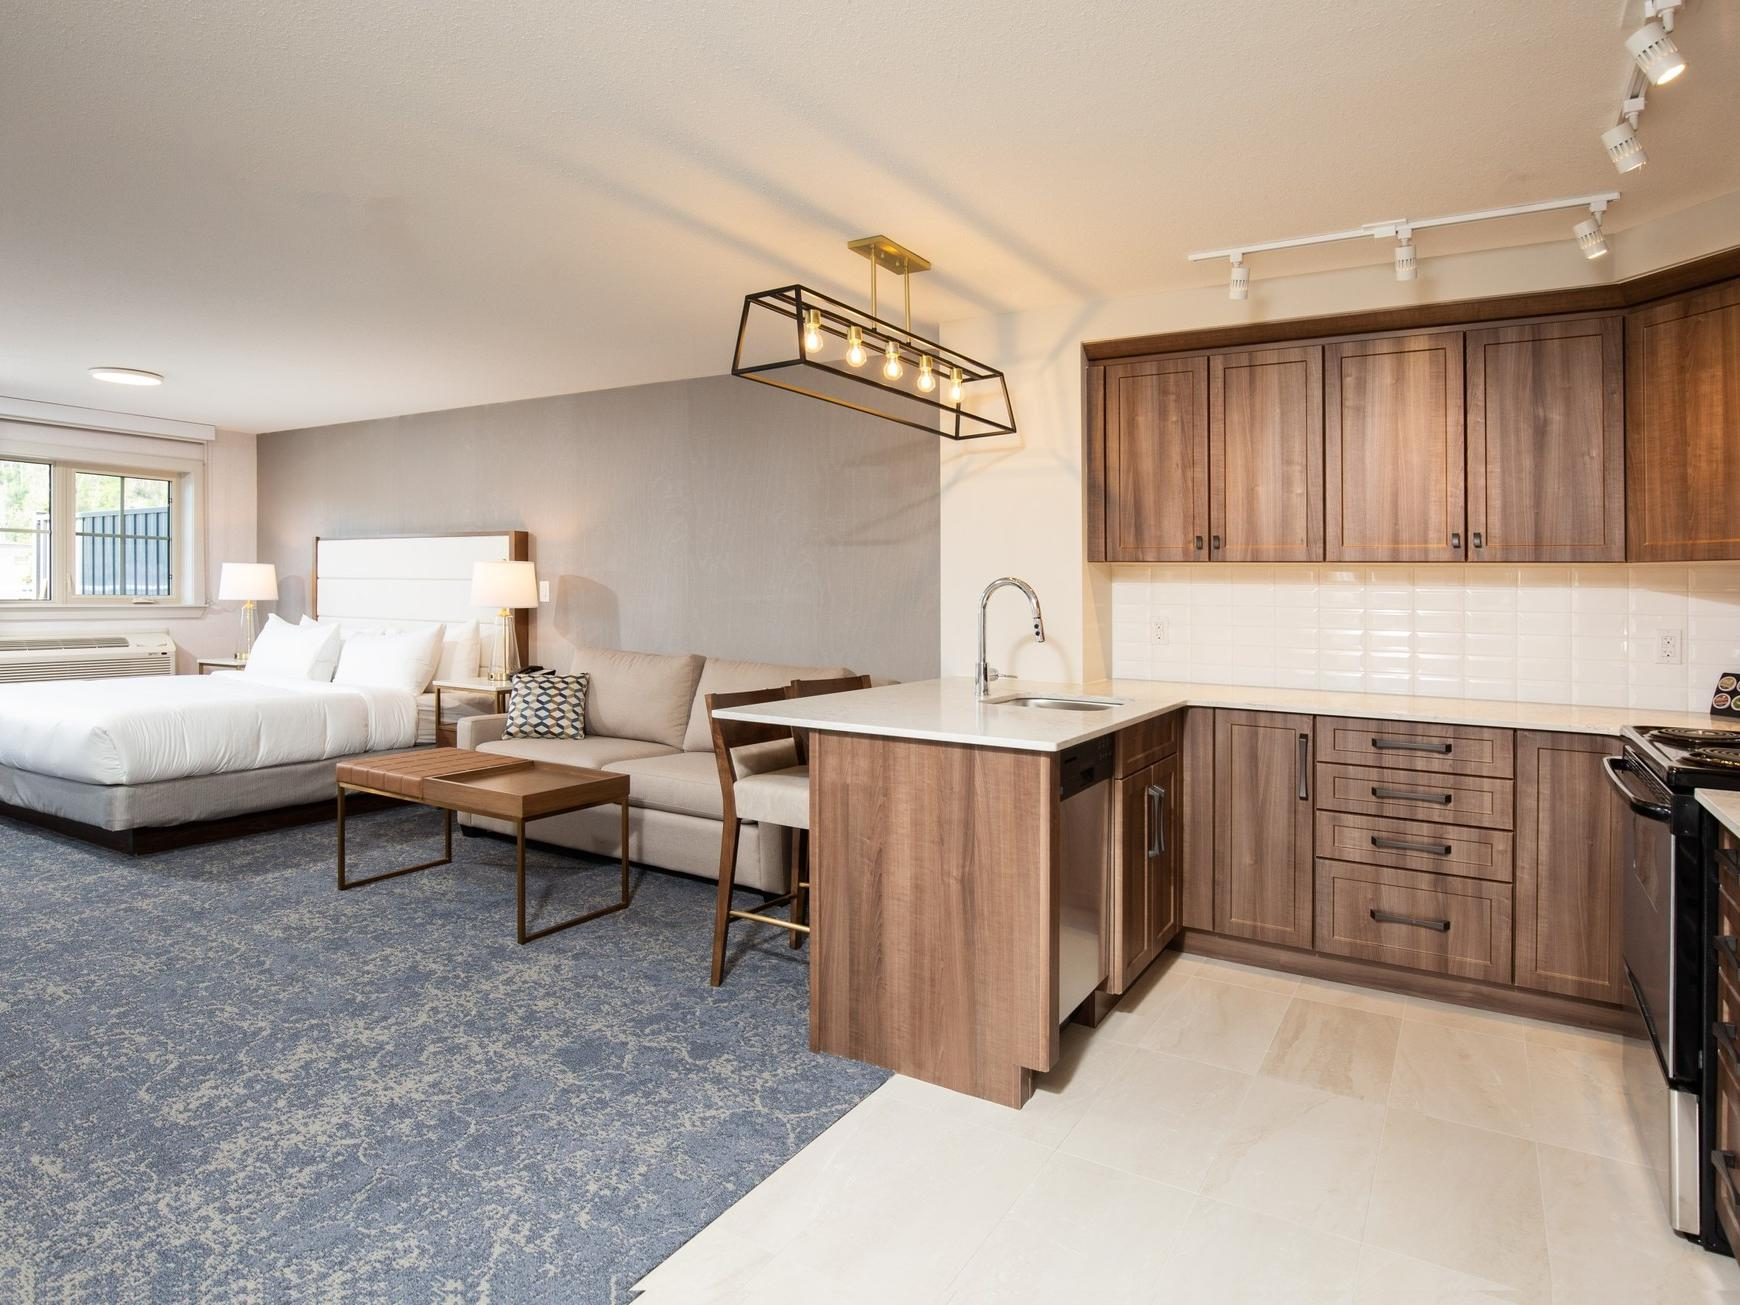 a hotel room with a kitchenette